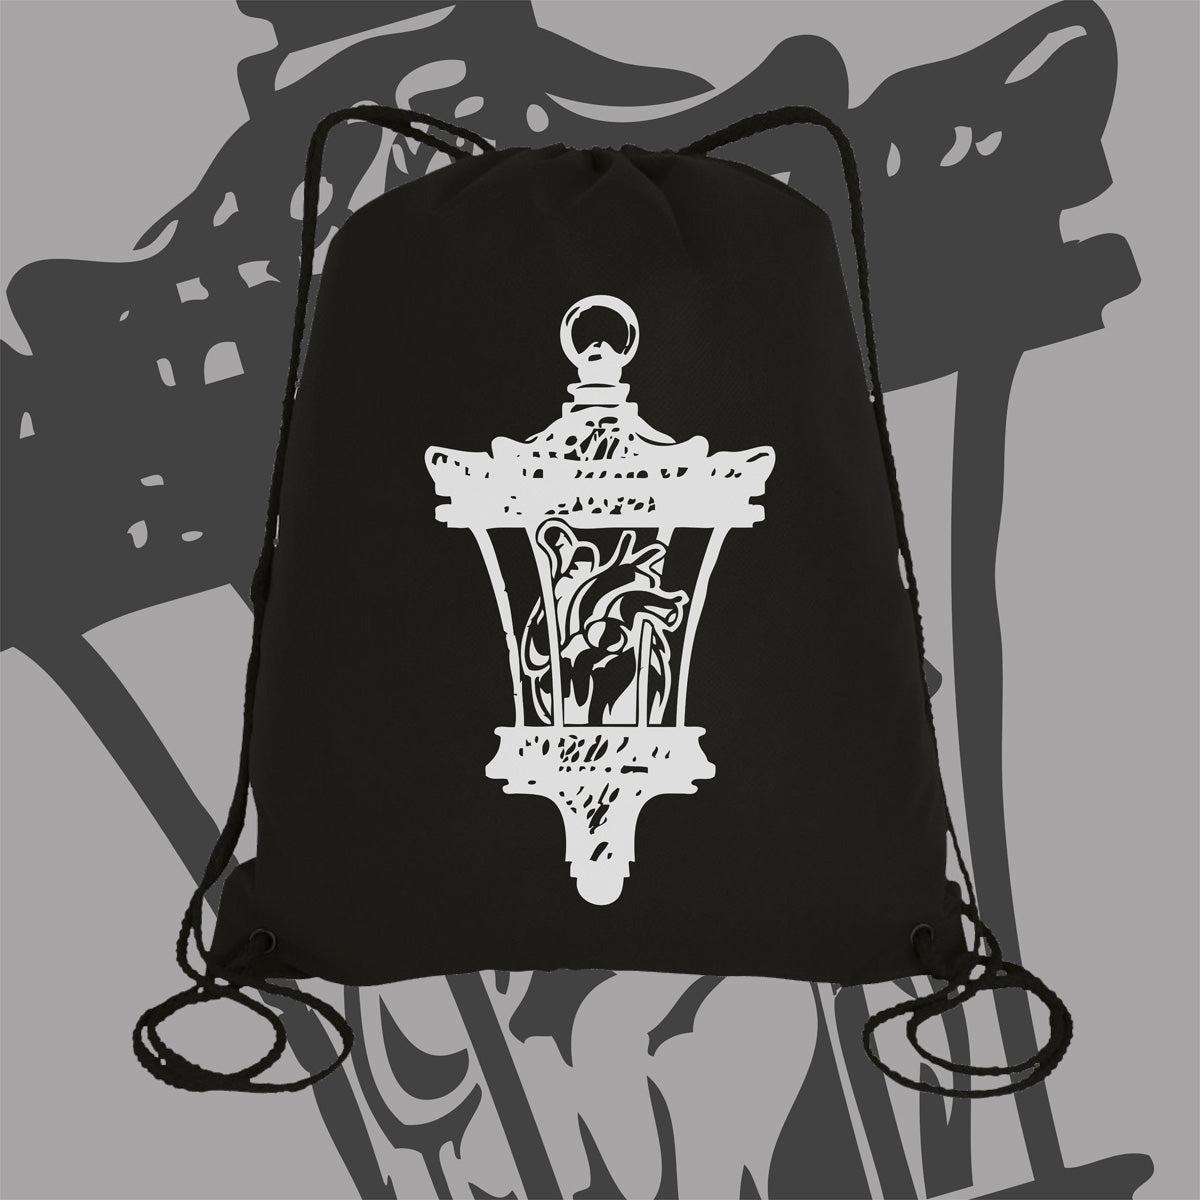 Deviant Clothing Drawstring Bag!